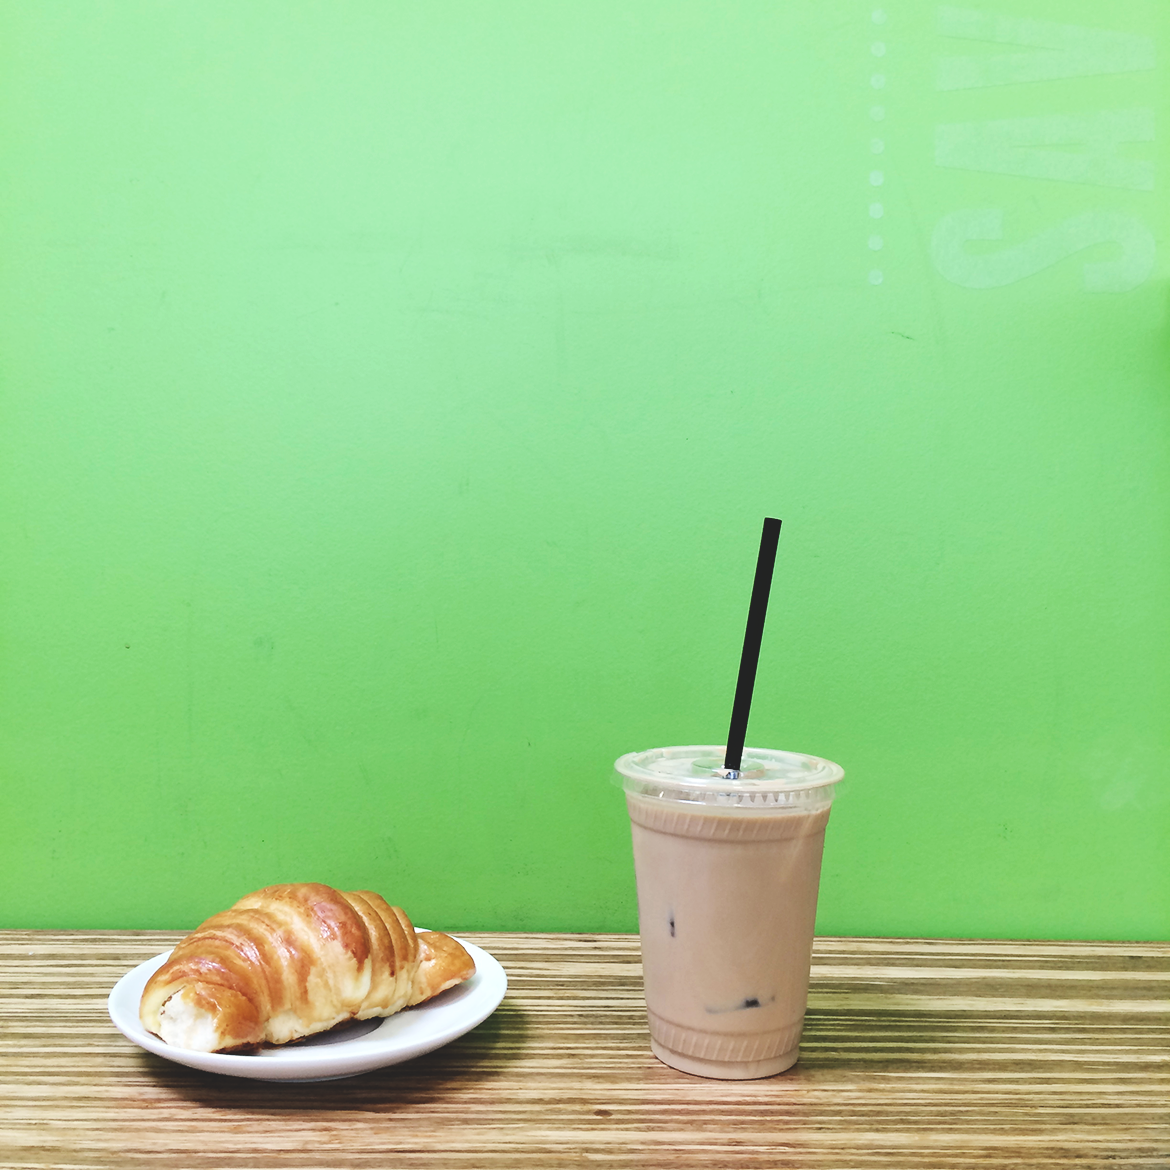 portoloa coffee lab, costa mesa, ca | coffee and croissant